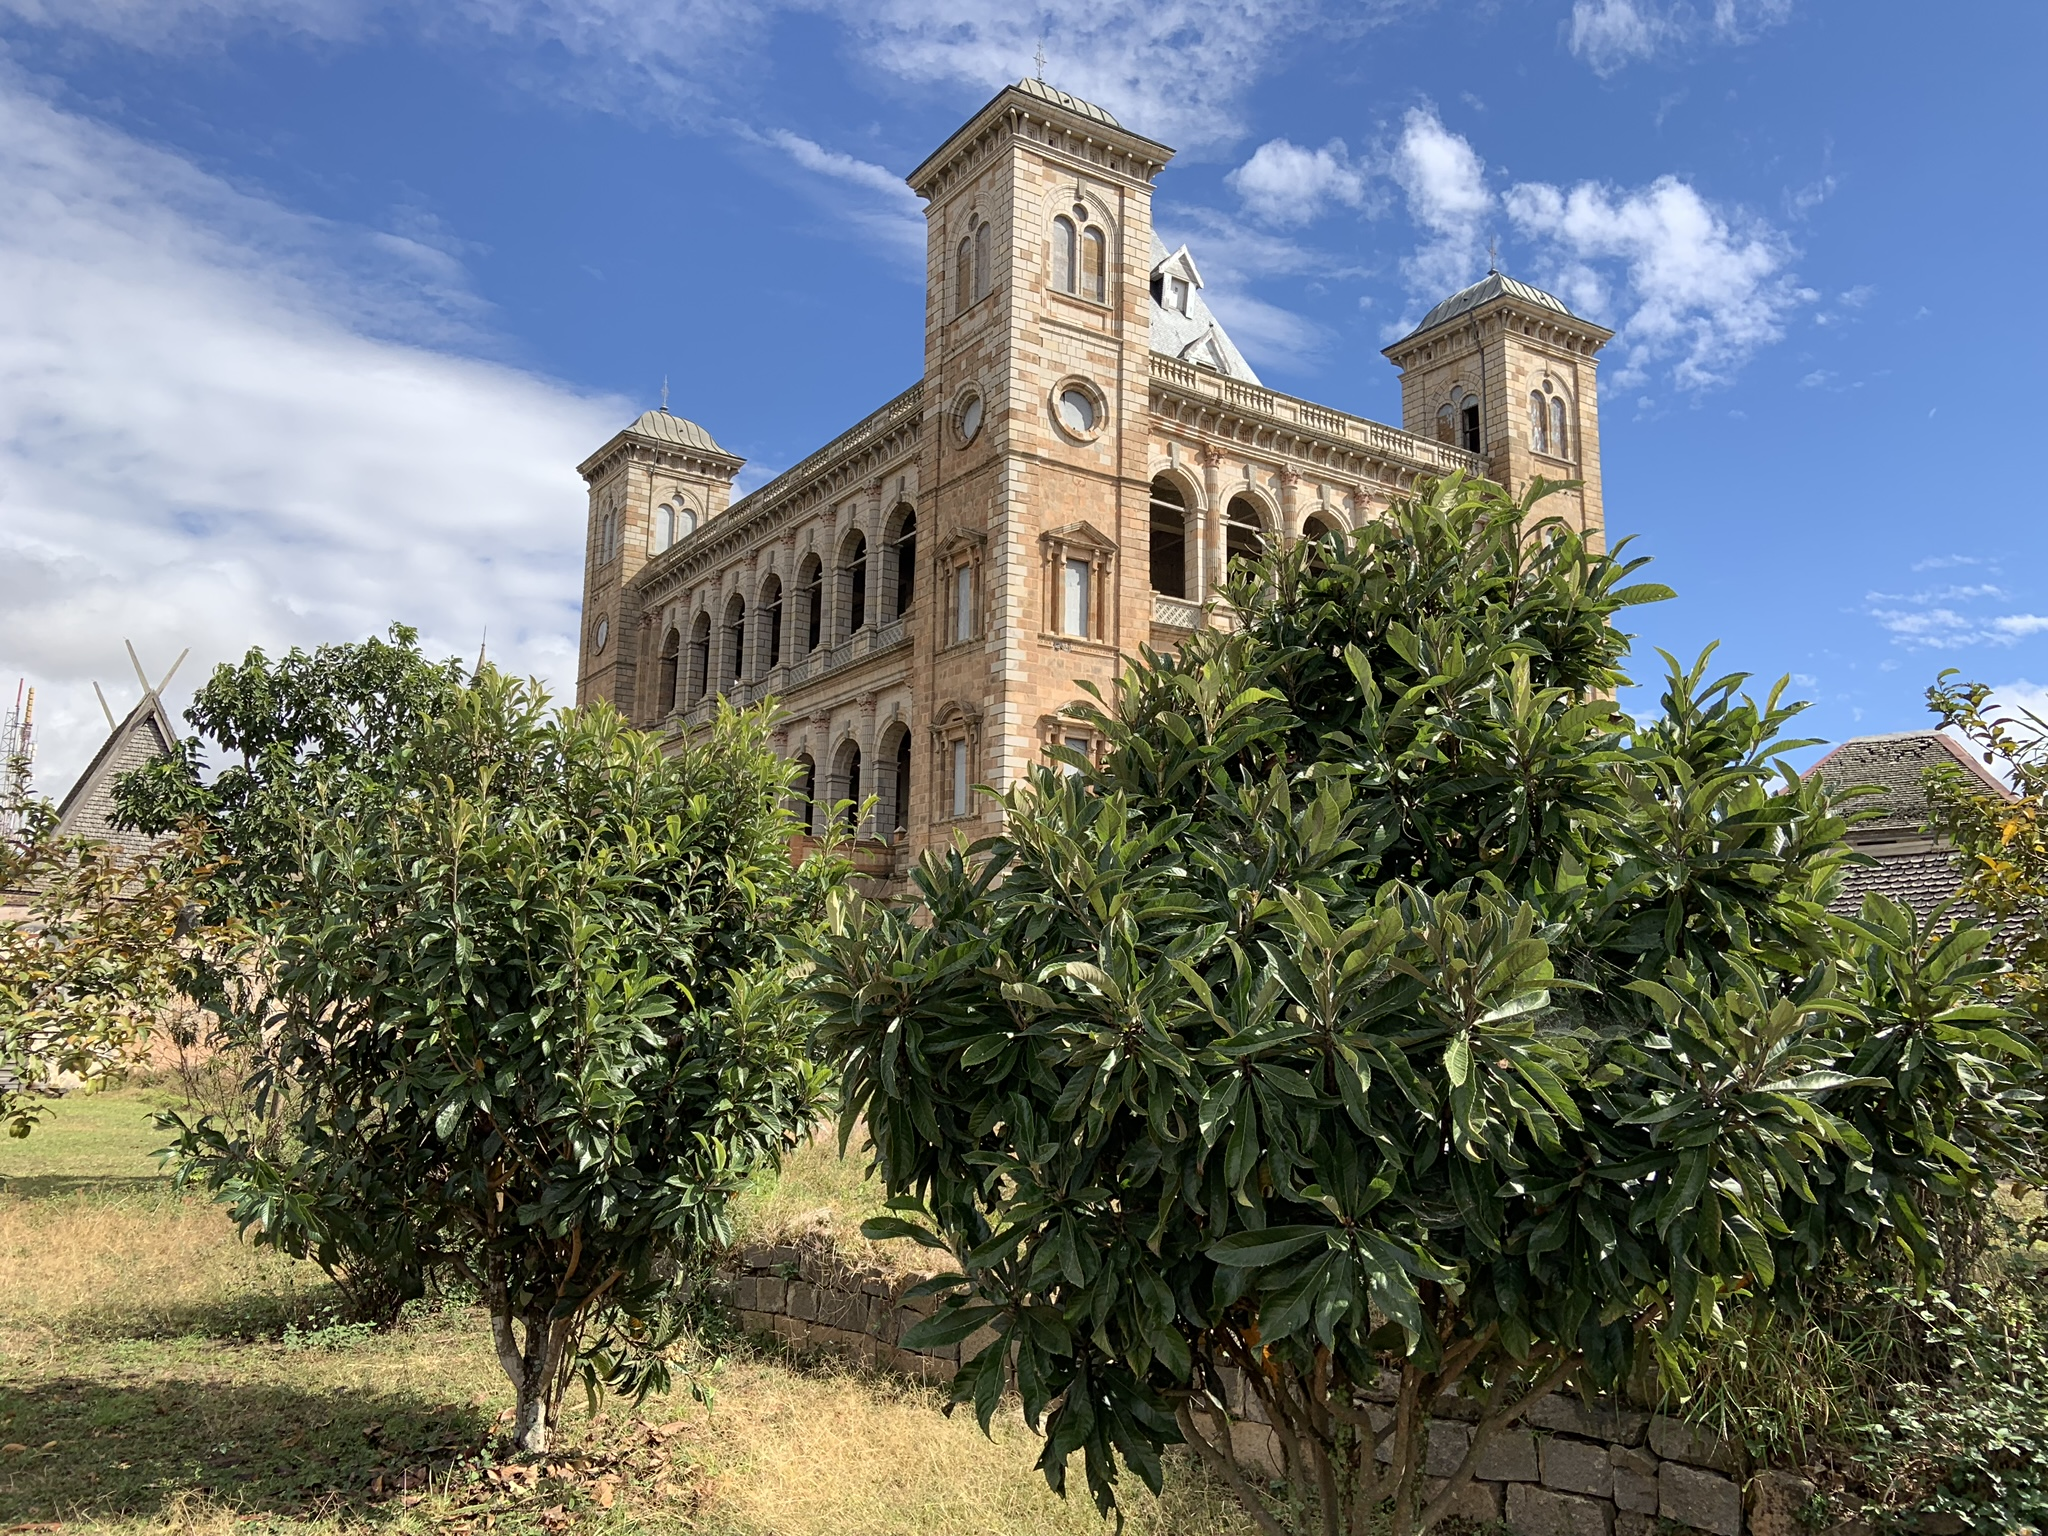 Queen's Palace - Antananarivo - MSG Tours